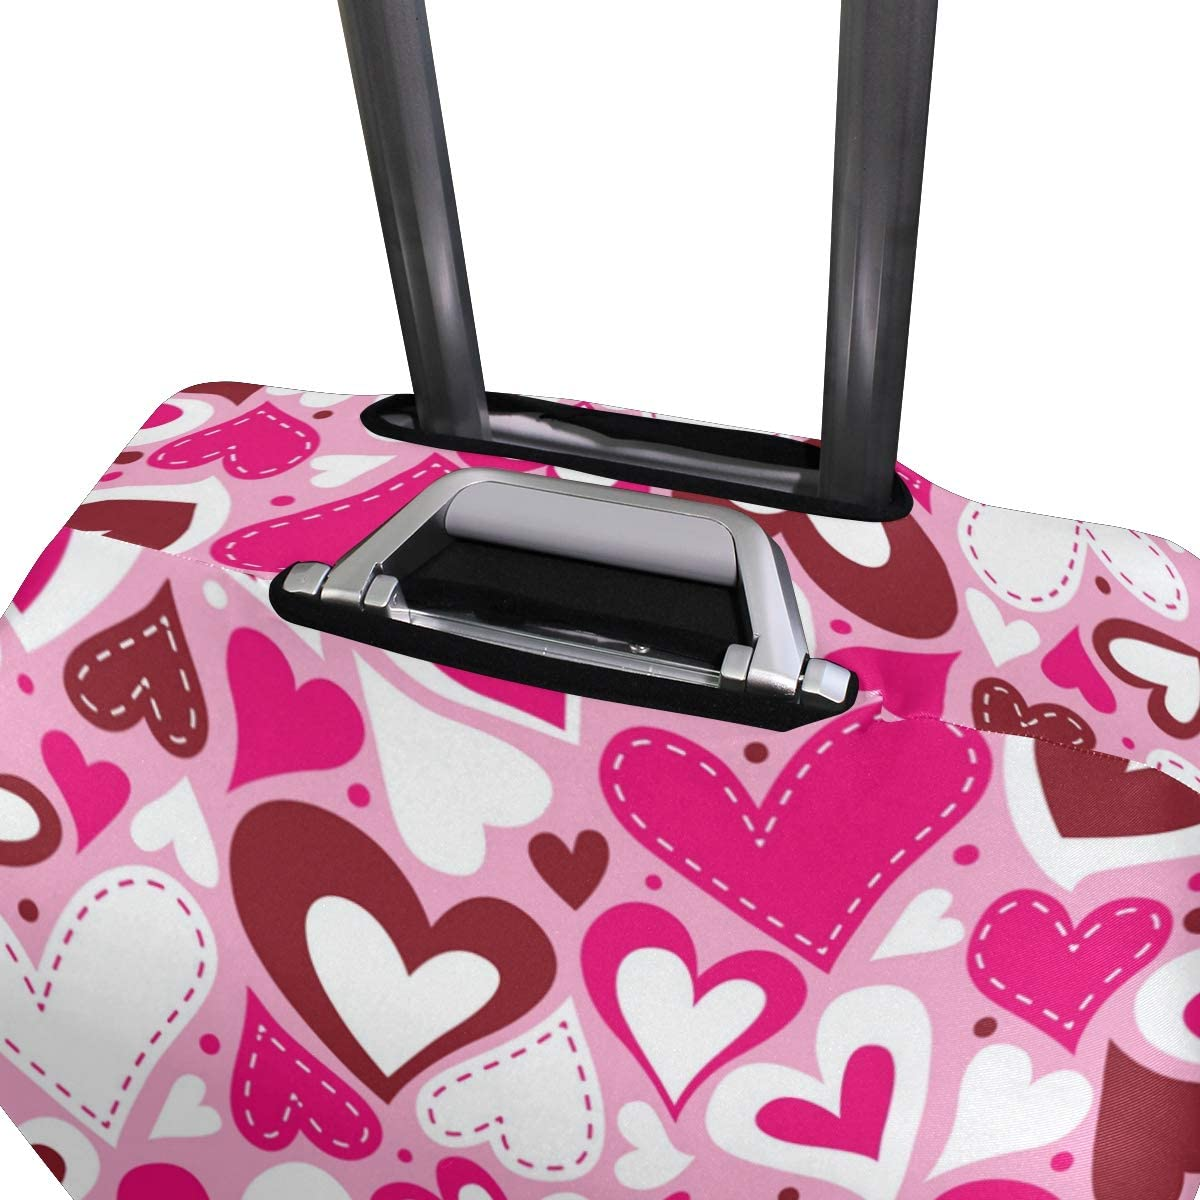 Blue Viper Hearts Valentine Day Pattern Luggage Protective Cover Suitcase Protector Fits 22-24 Inch Luggage